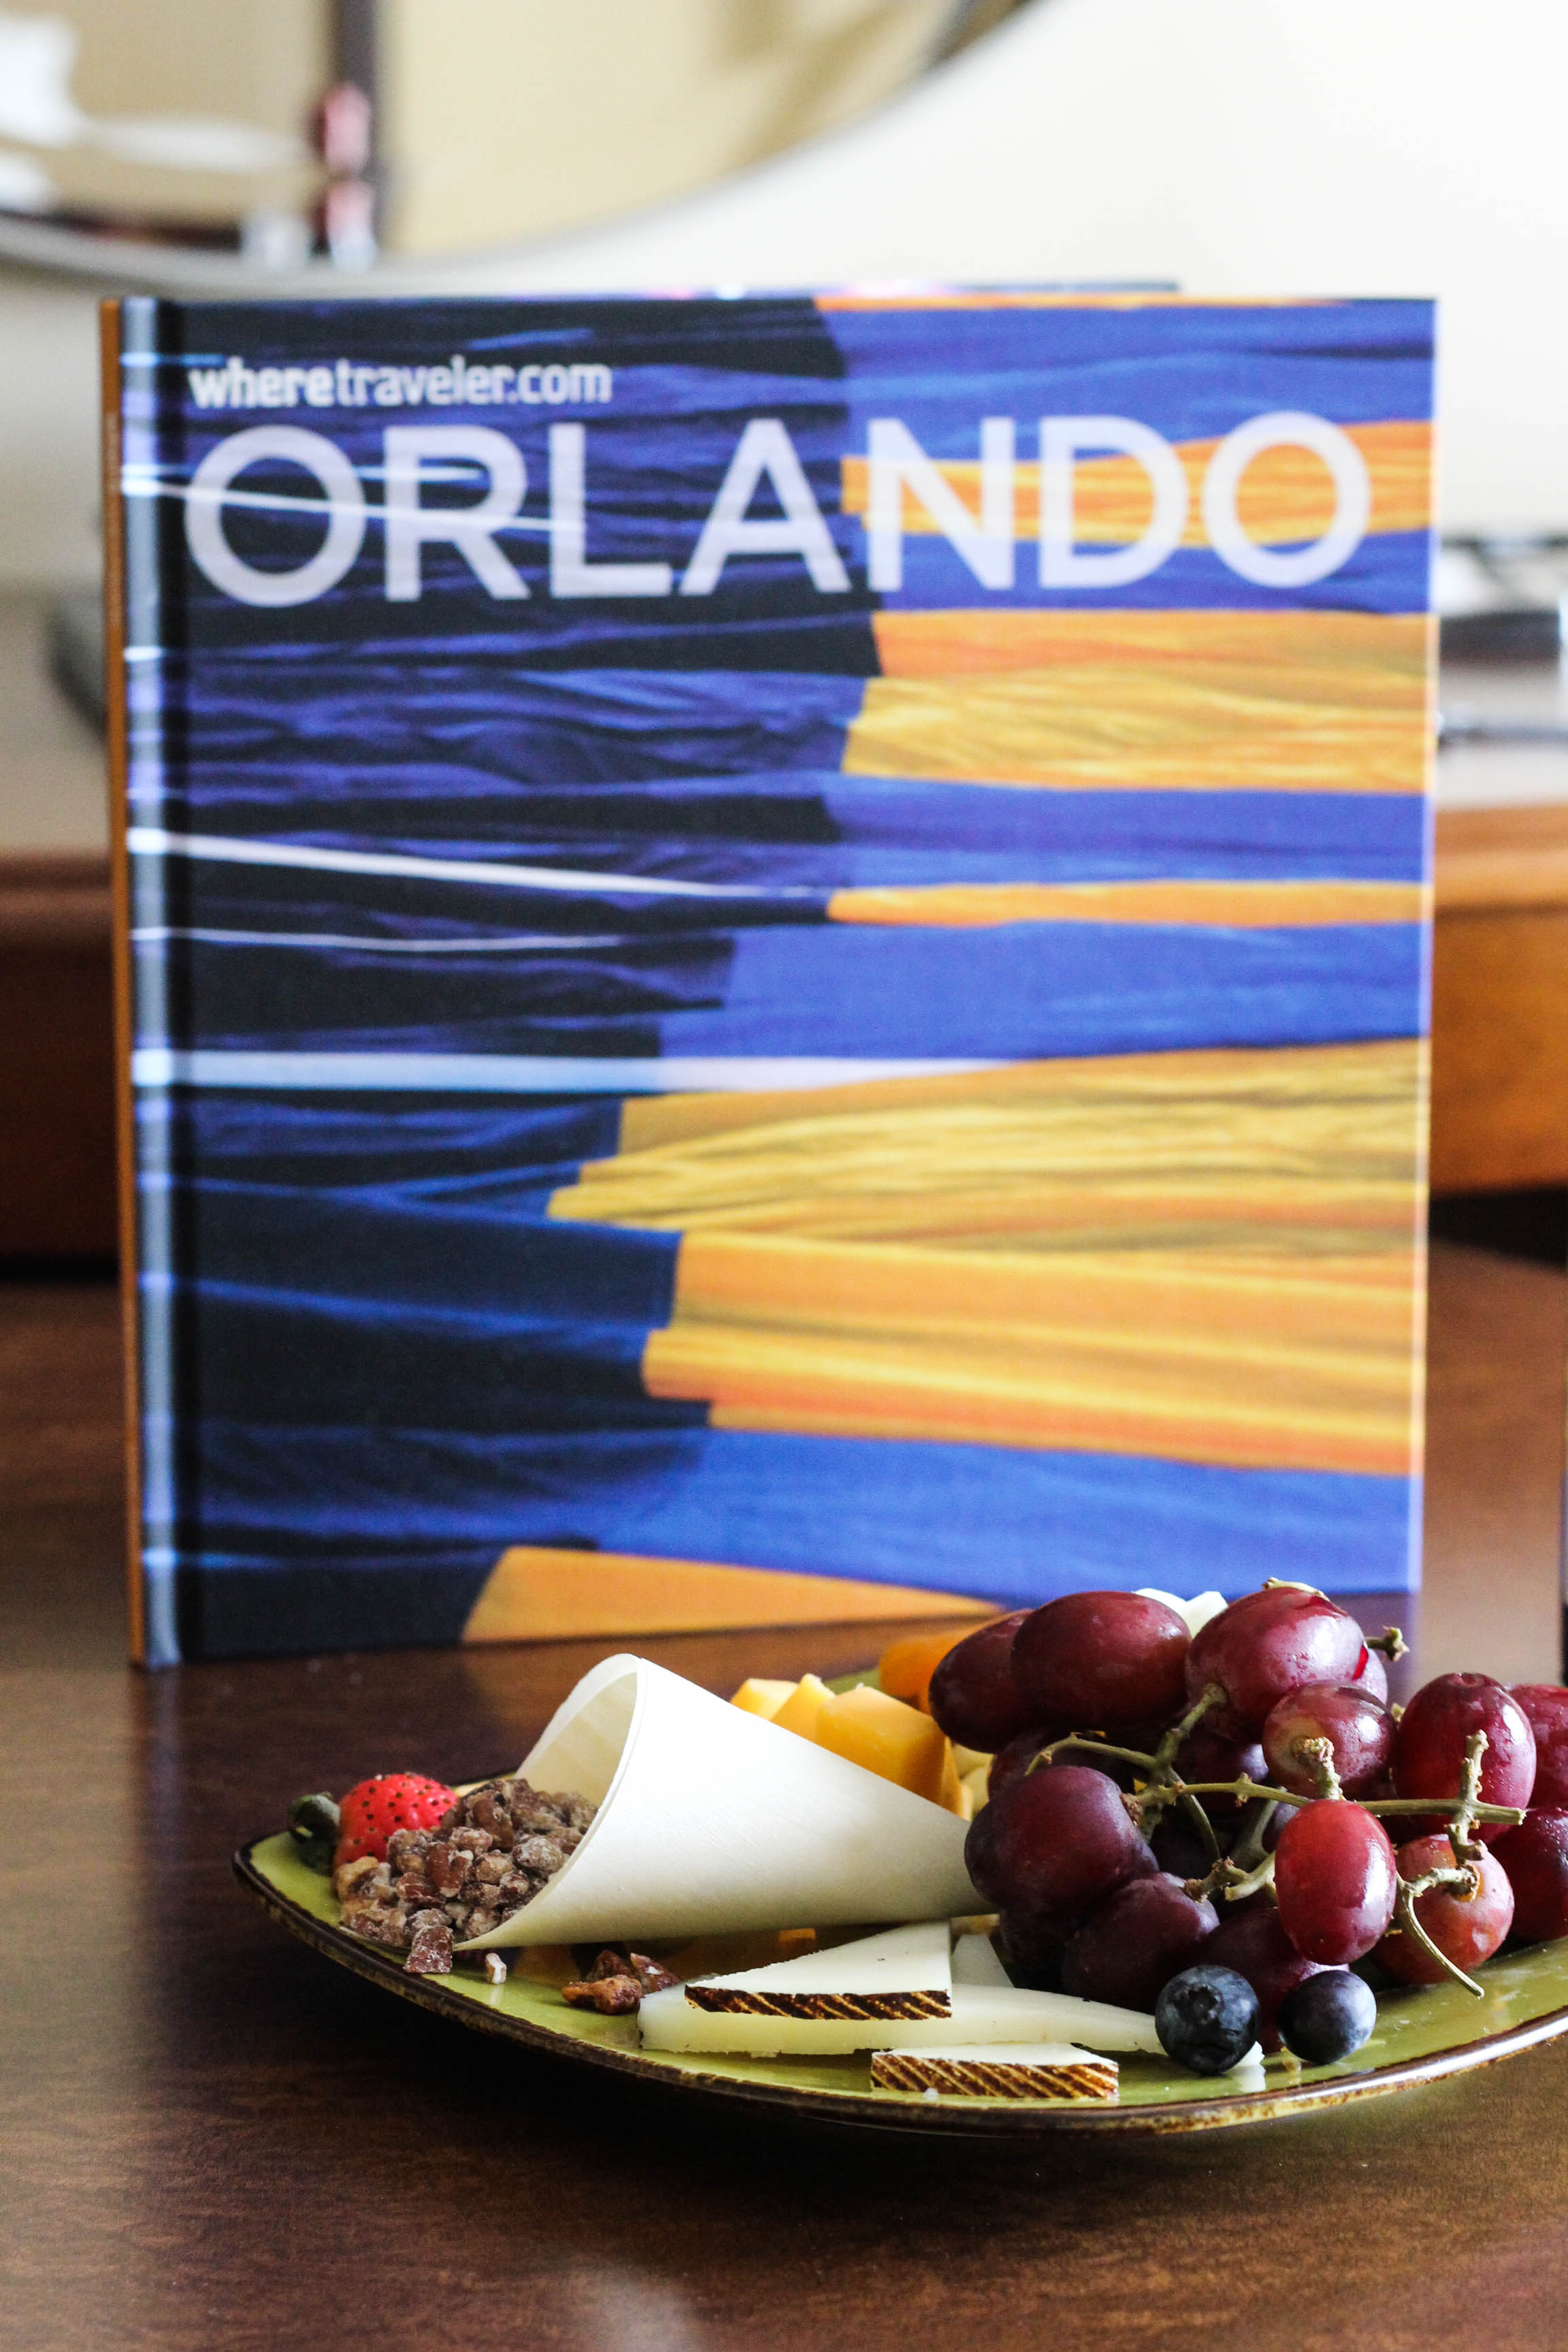 48 Hours in Orlando